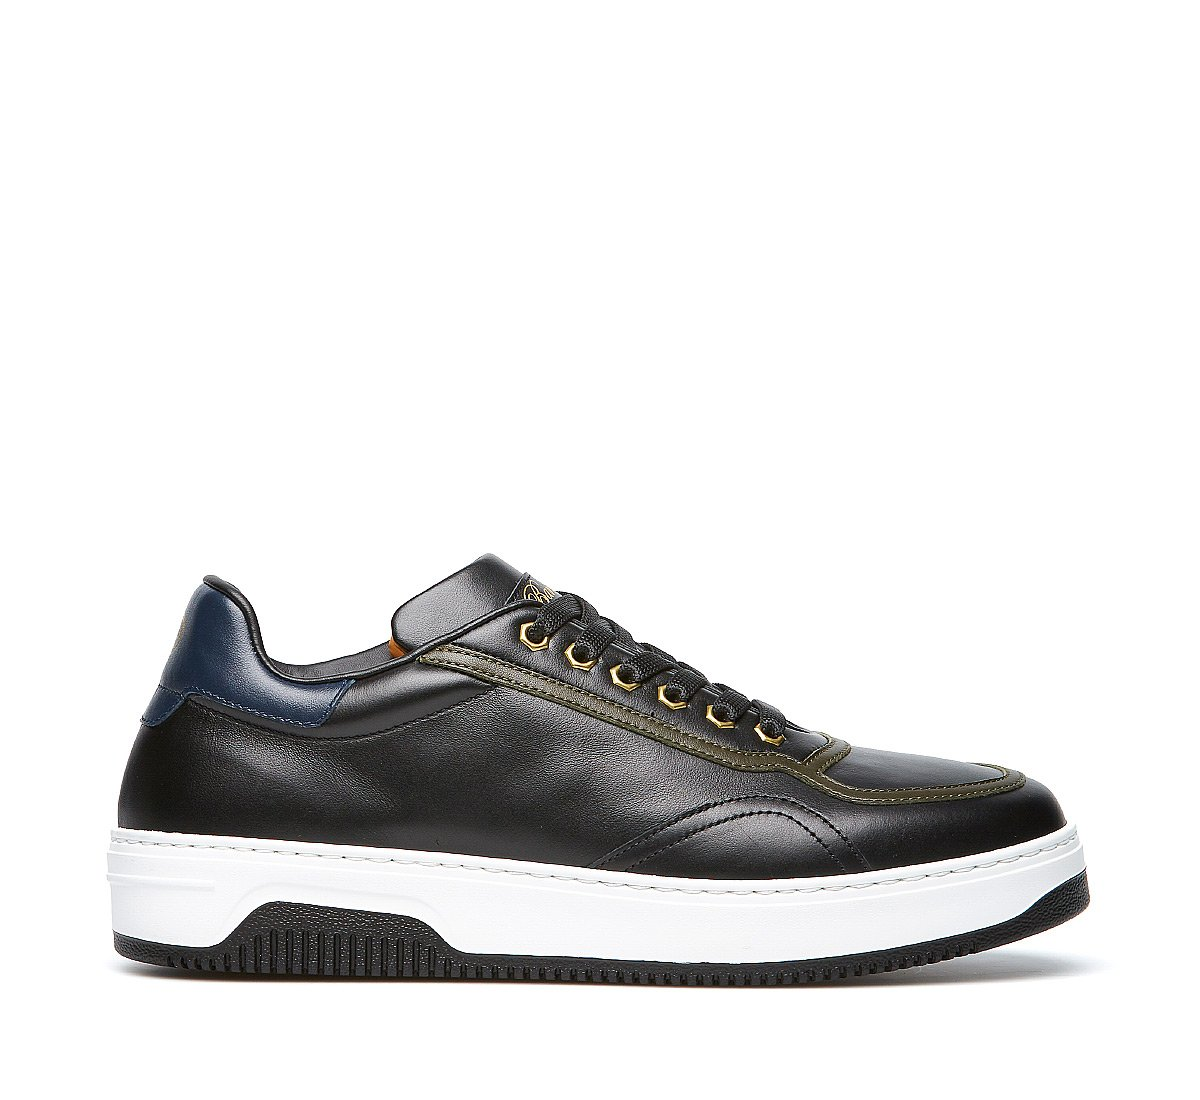 Sneaker Barracuda Gliese